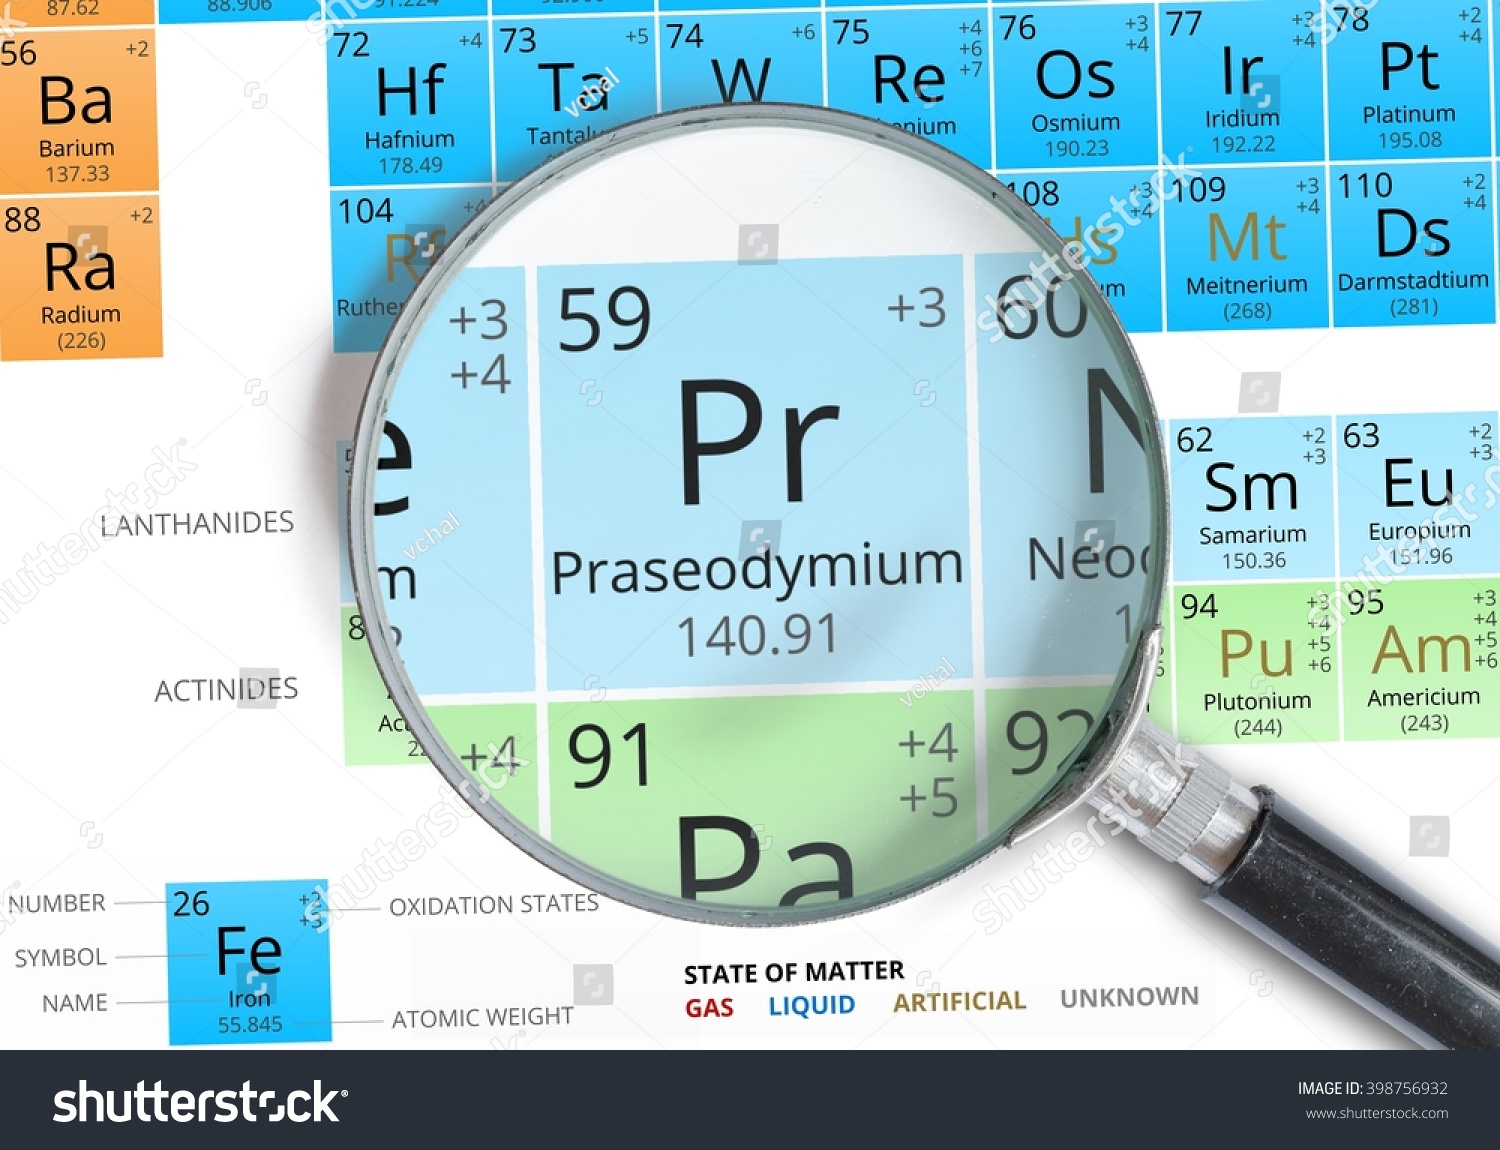 Praseodymium symbol pr element periodic table stock photo praseodymium symbol pr element of the periodic table zoomed with magnifying glass urtaz Gallery